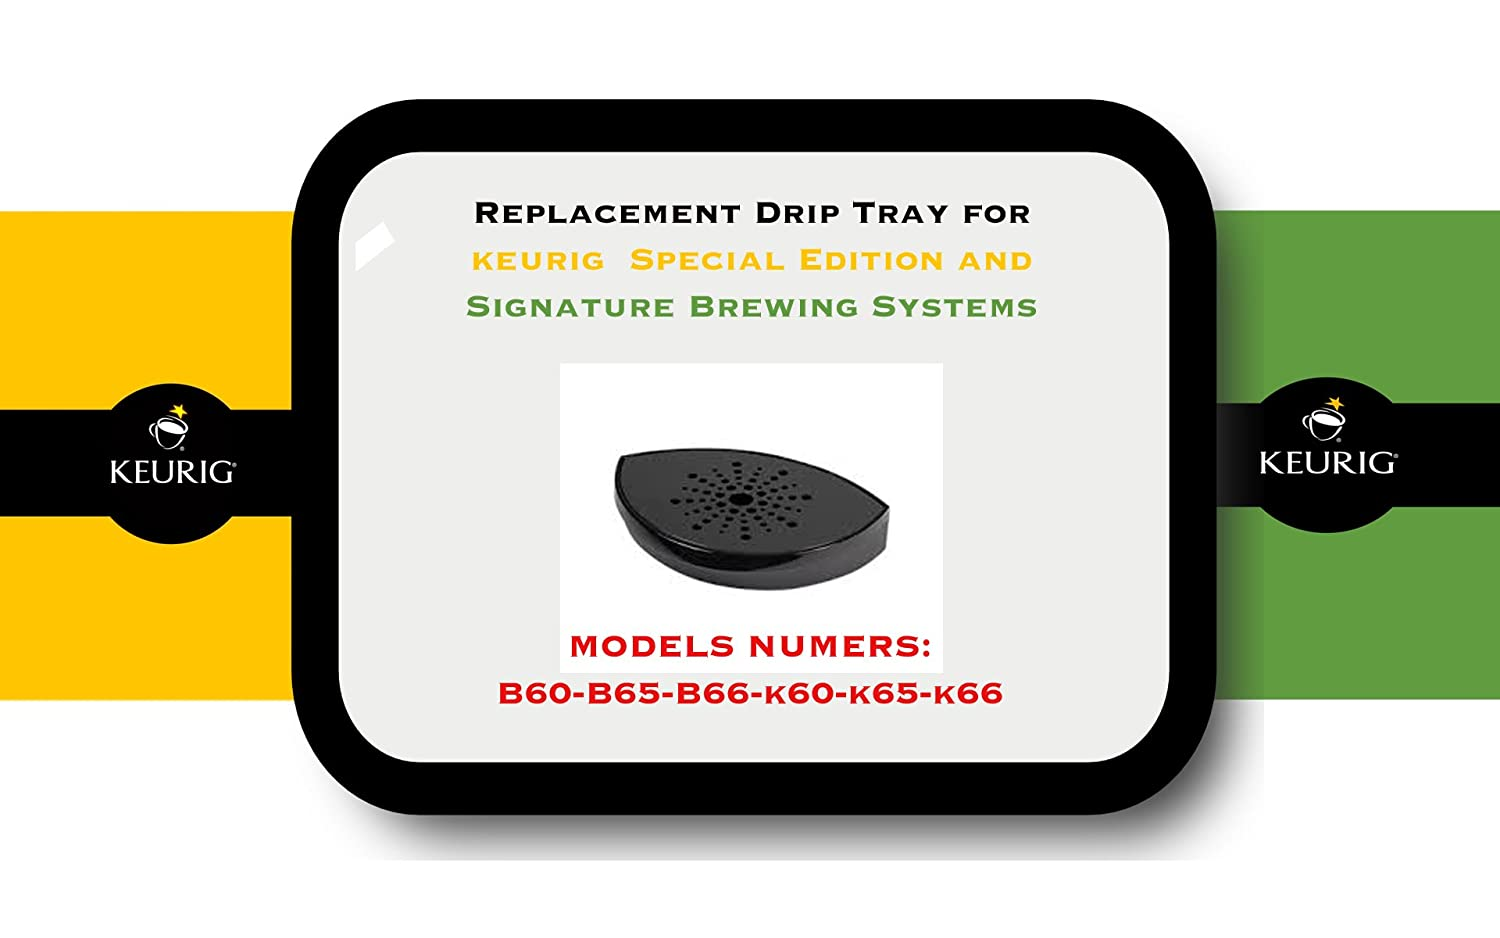 Replacement Drip Tray for Keurig B60, B65, B66, K60, K65, K66, Special Edition and Signature Brewing Systems